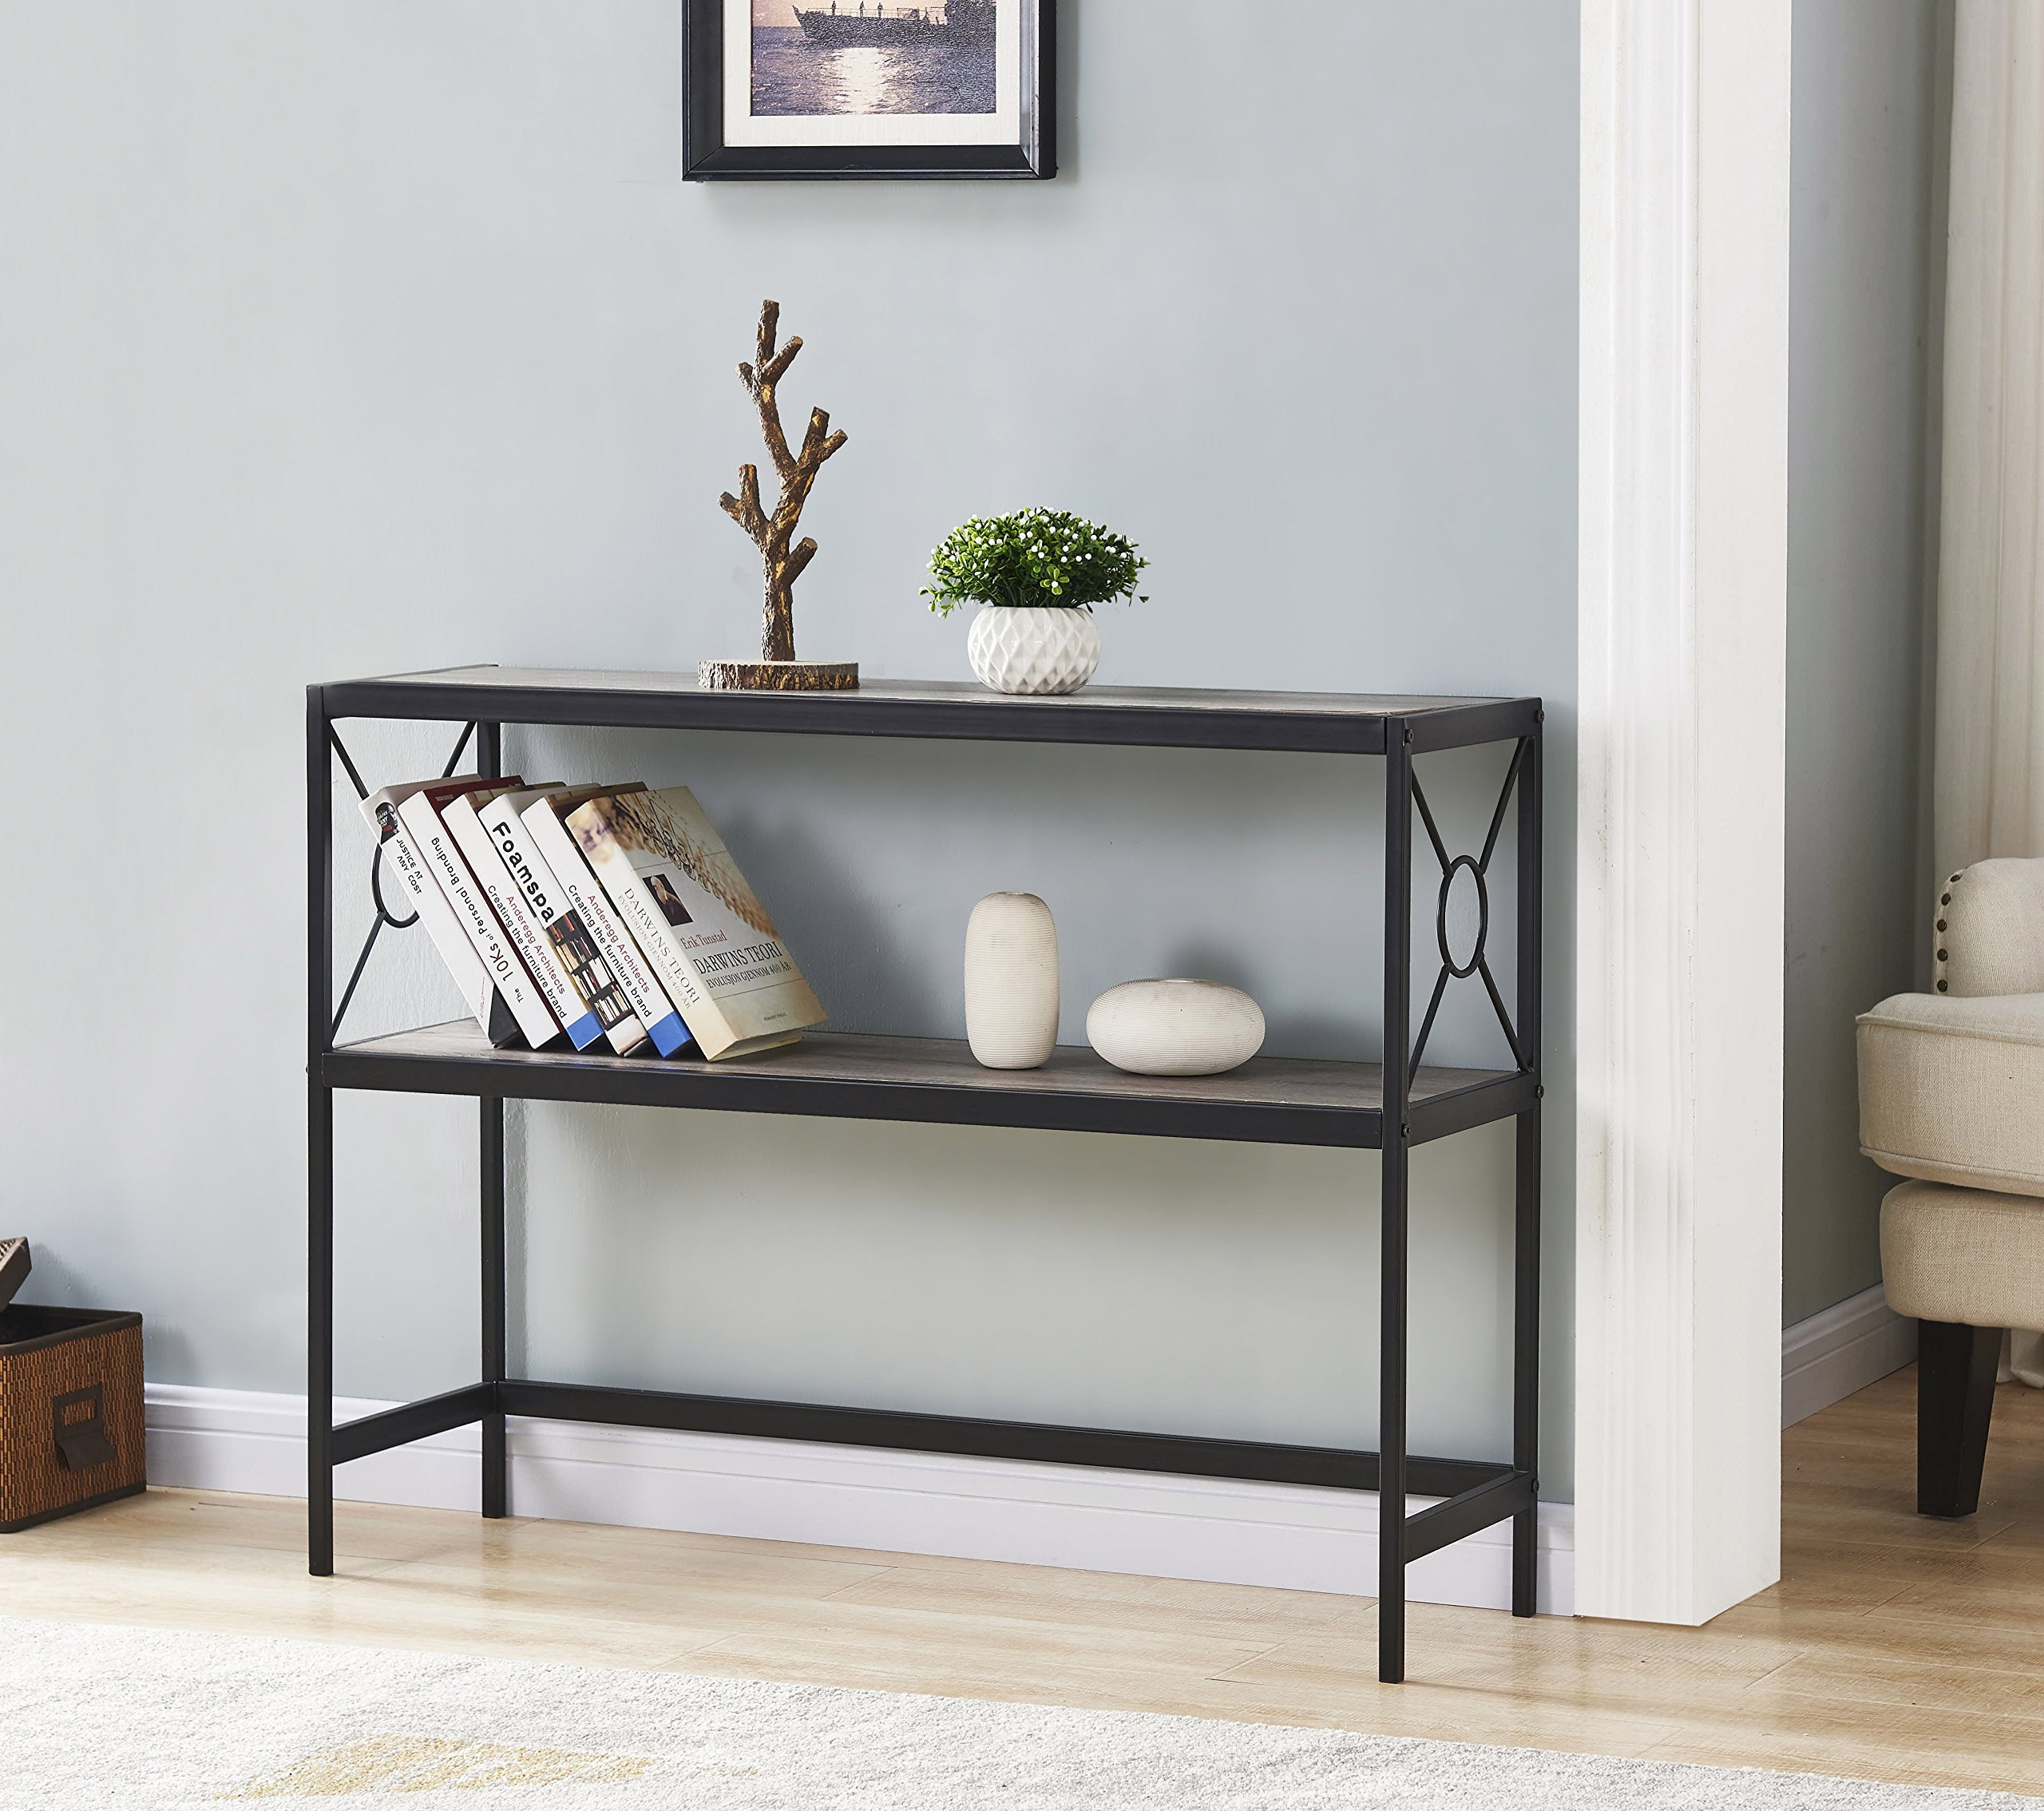 Weathered Grey Oak Metal Frame 2-tier Console Sofa Table with Circle Design